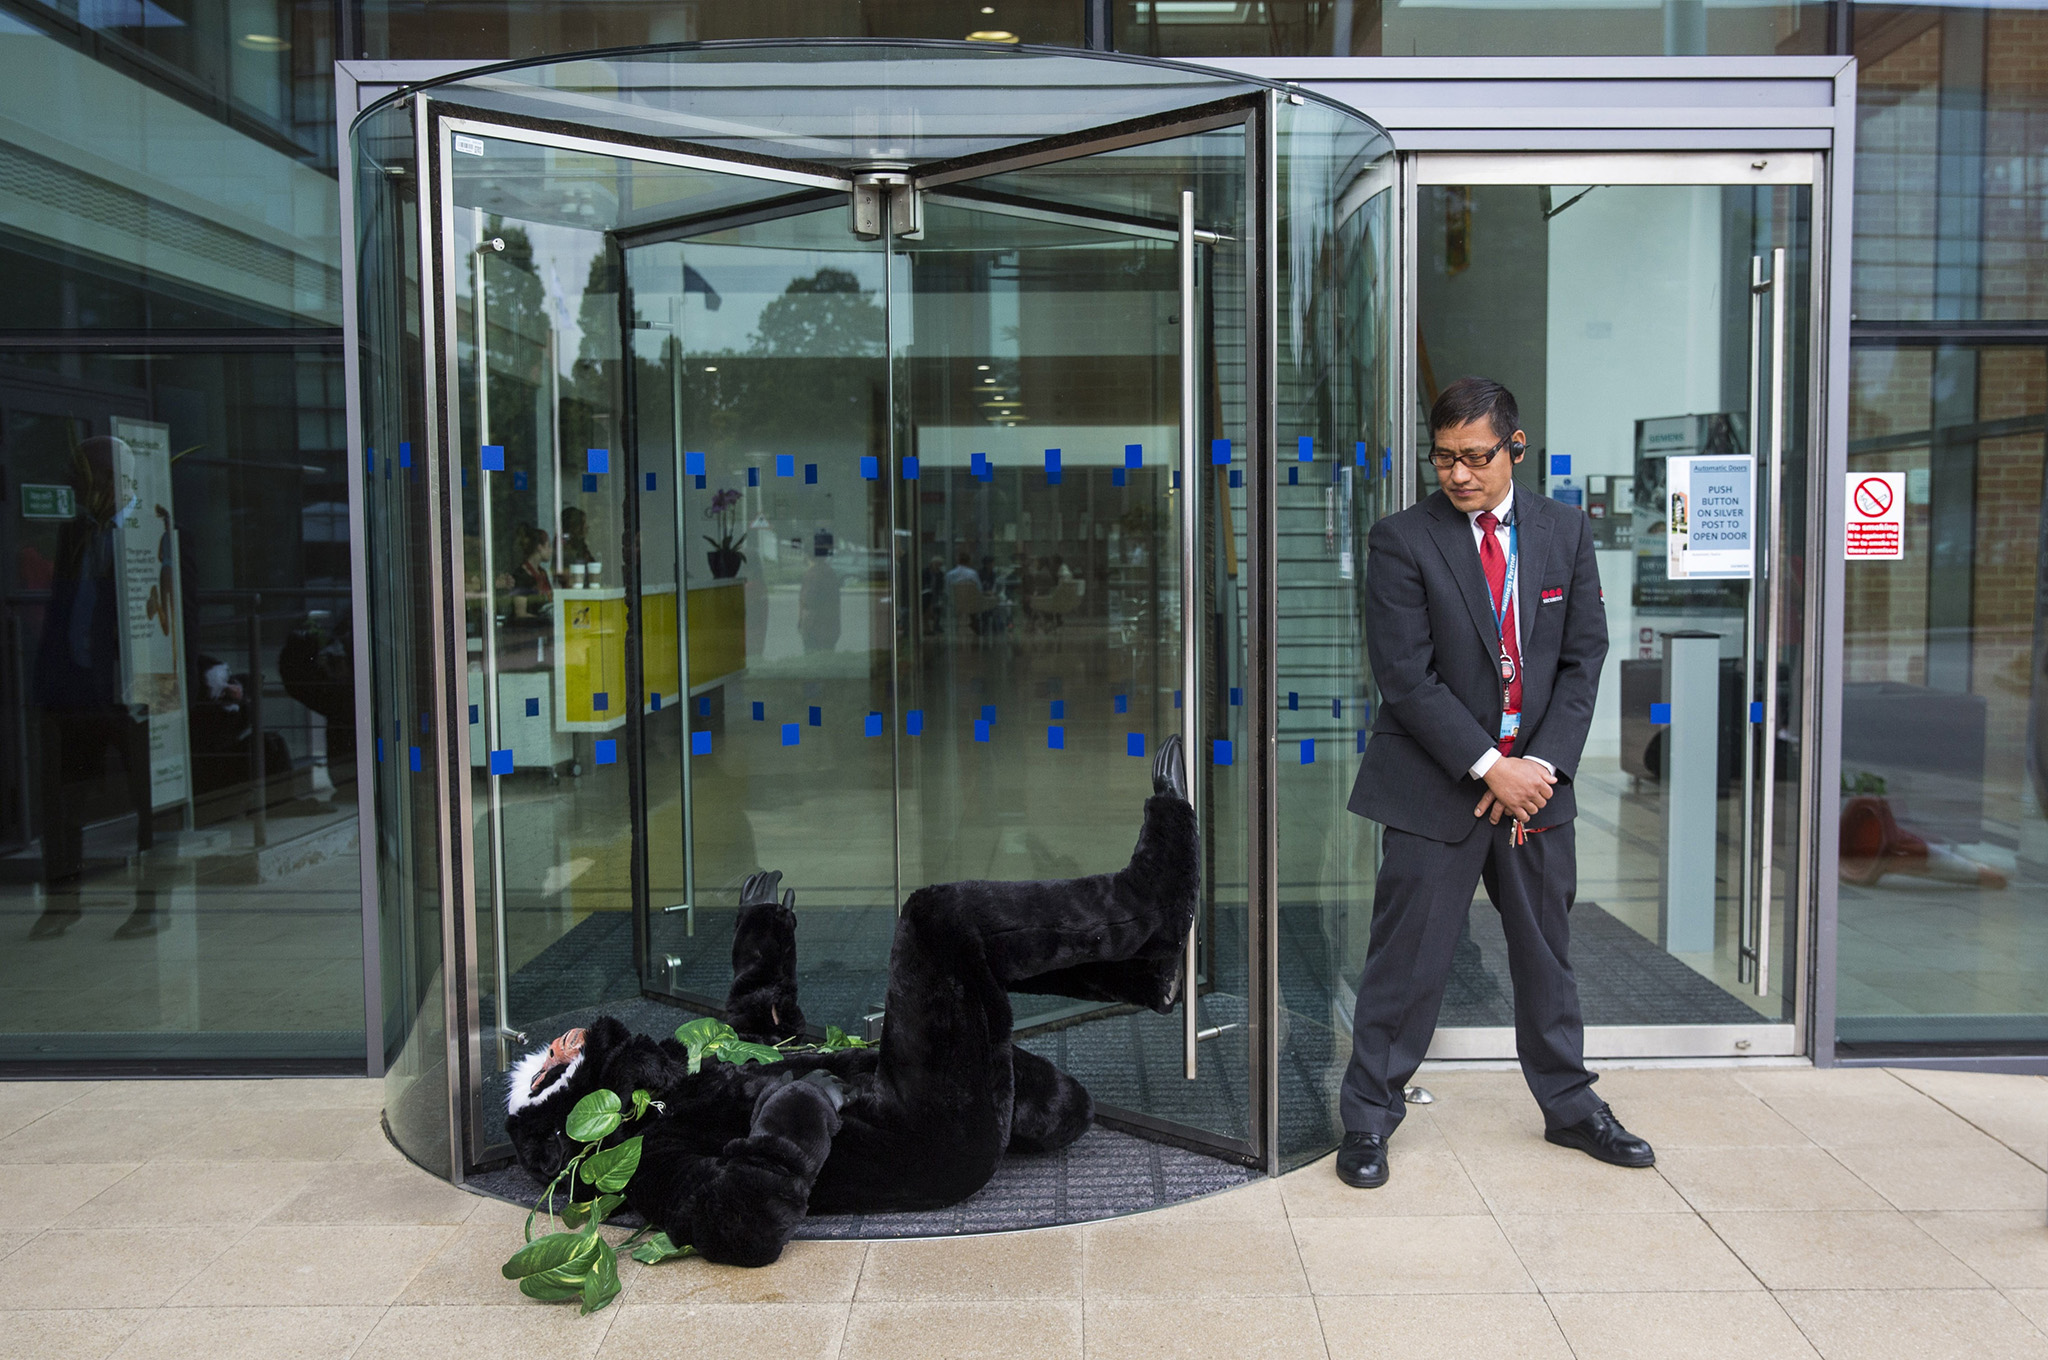 CAMBERLEY, ENGLAND - AUGUST 11: A Siemens security guard looks on as a Greenpeace activist dressed in a monkey costume demonstrate outside the Siemens' UK headquarters on August 11, 2016 in Camberley, England. Greenpeace activists joined two members of the Amazonian Munduruku tribe at German engineering company Siemens' UK headquarters today to protest the building of mega dams in the Brazilian Amazon and to demand a meeting with senior management at the company. (Photo by Jack Taylor/Getty Images)